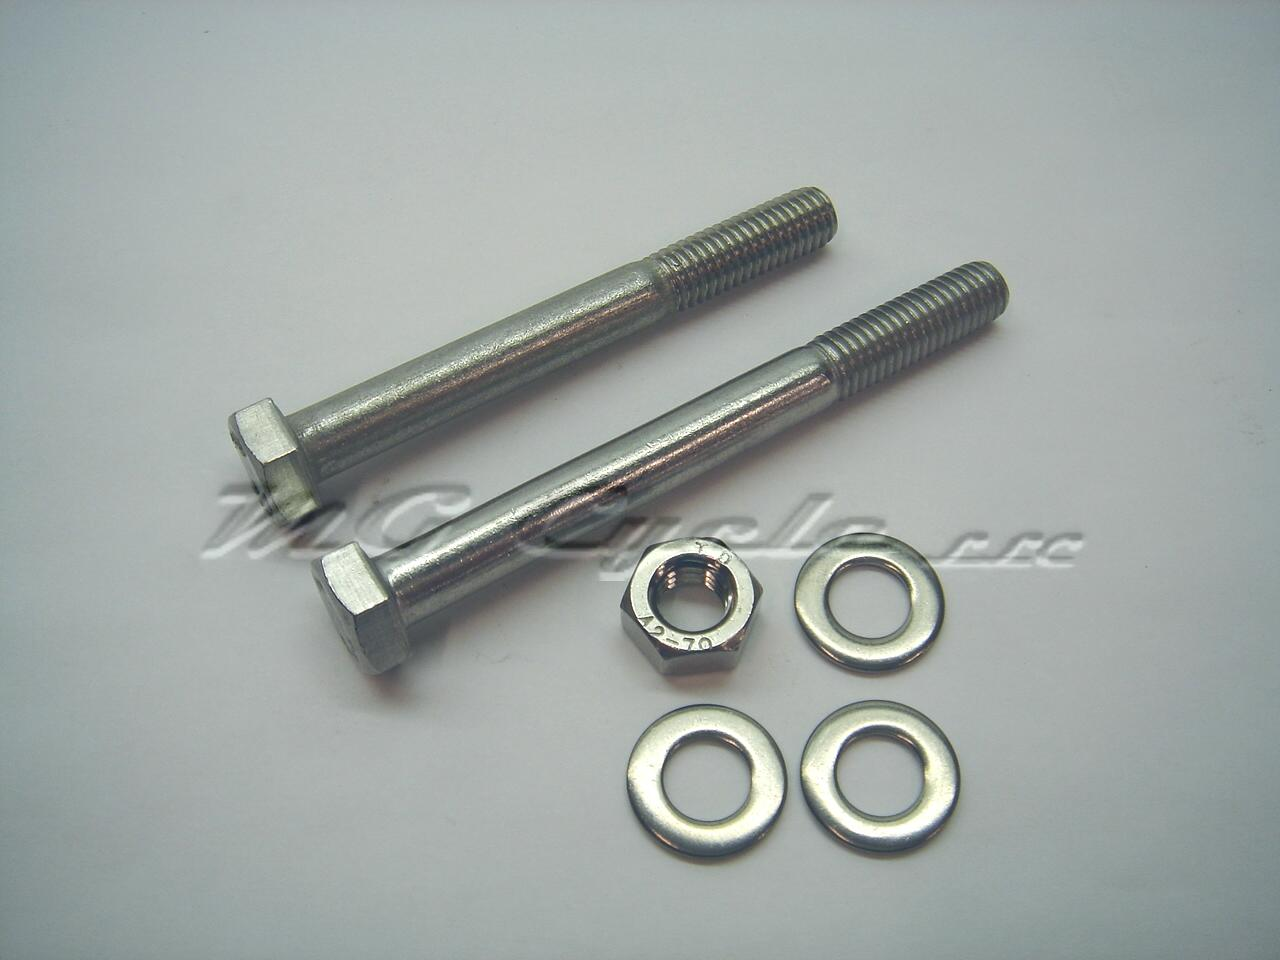 Stainless starter motor bolt kit for Bosch and Marelli starters